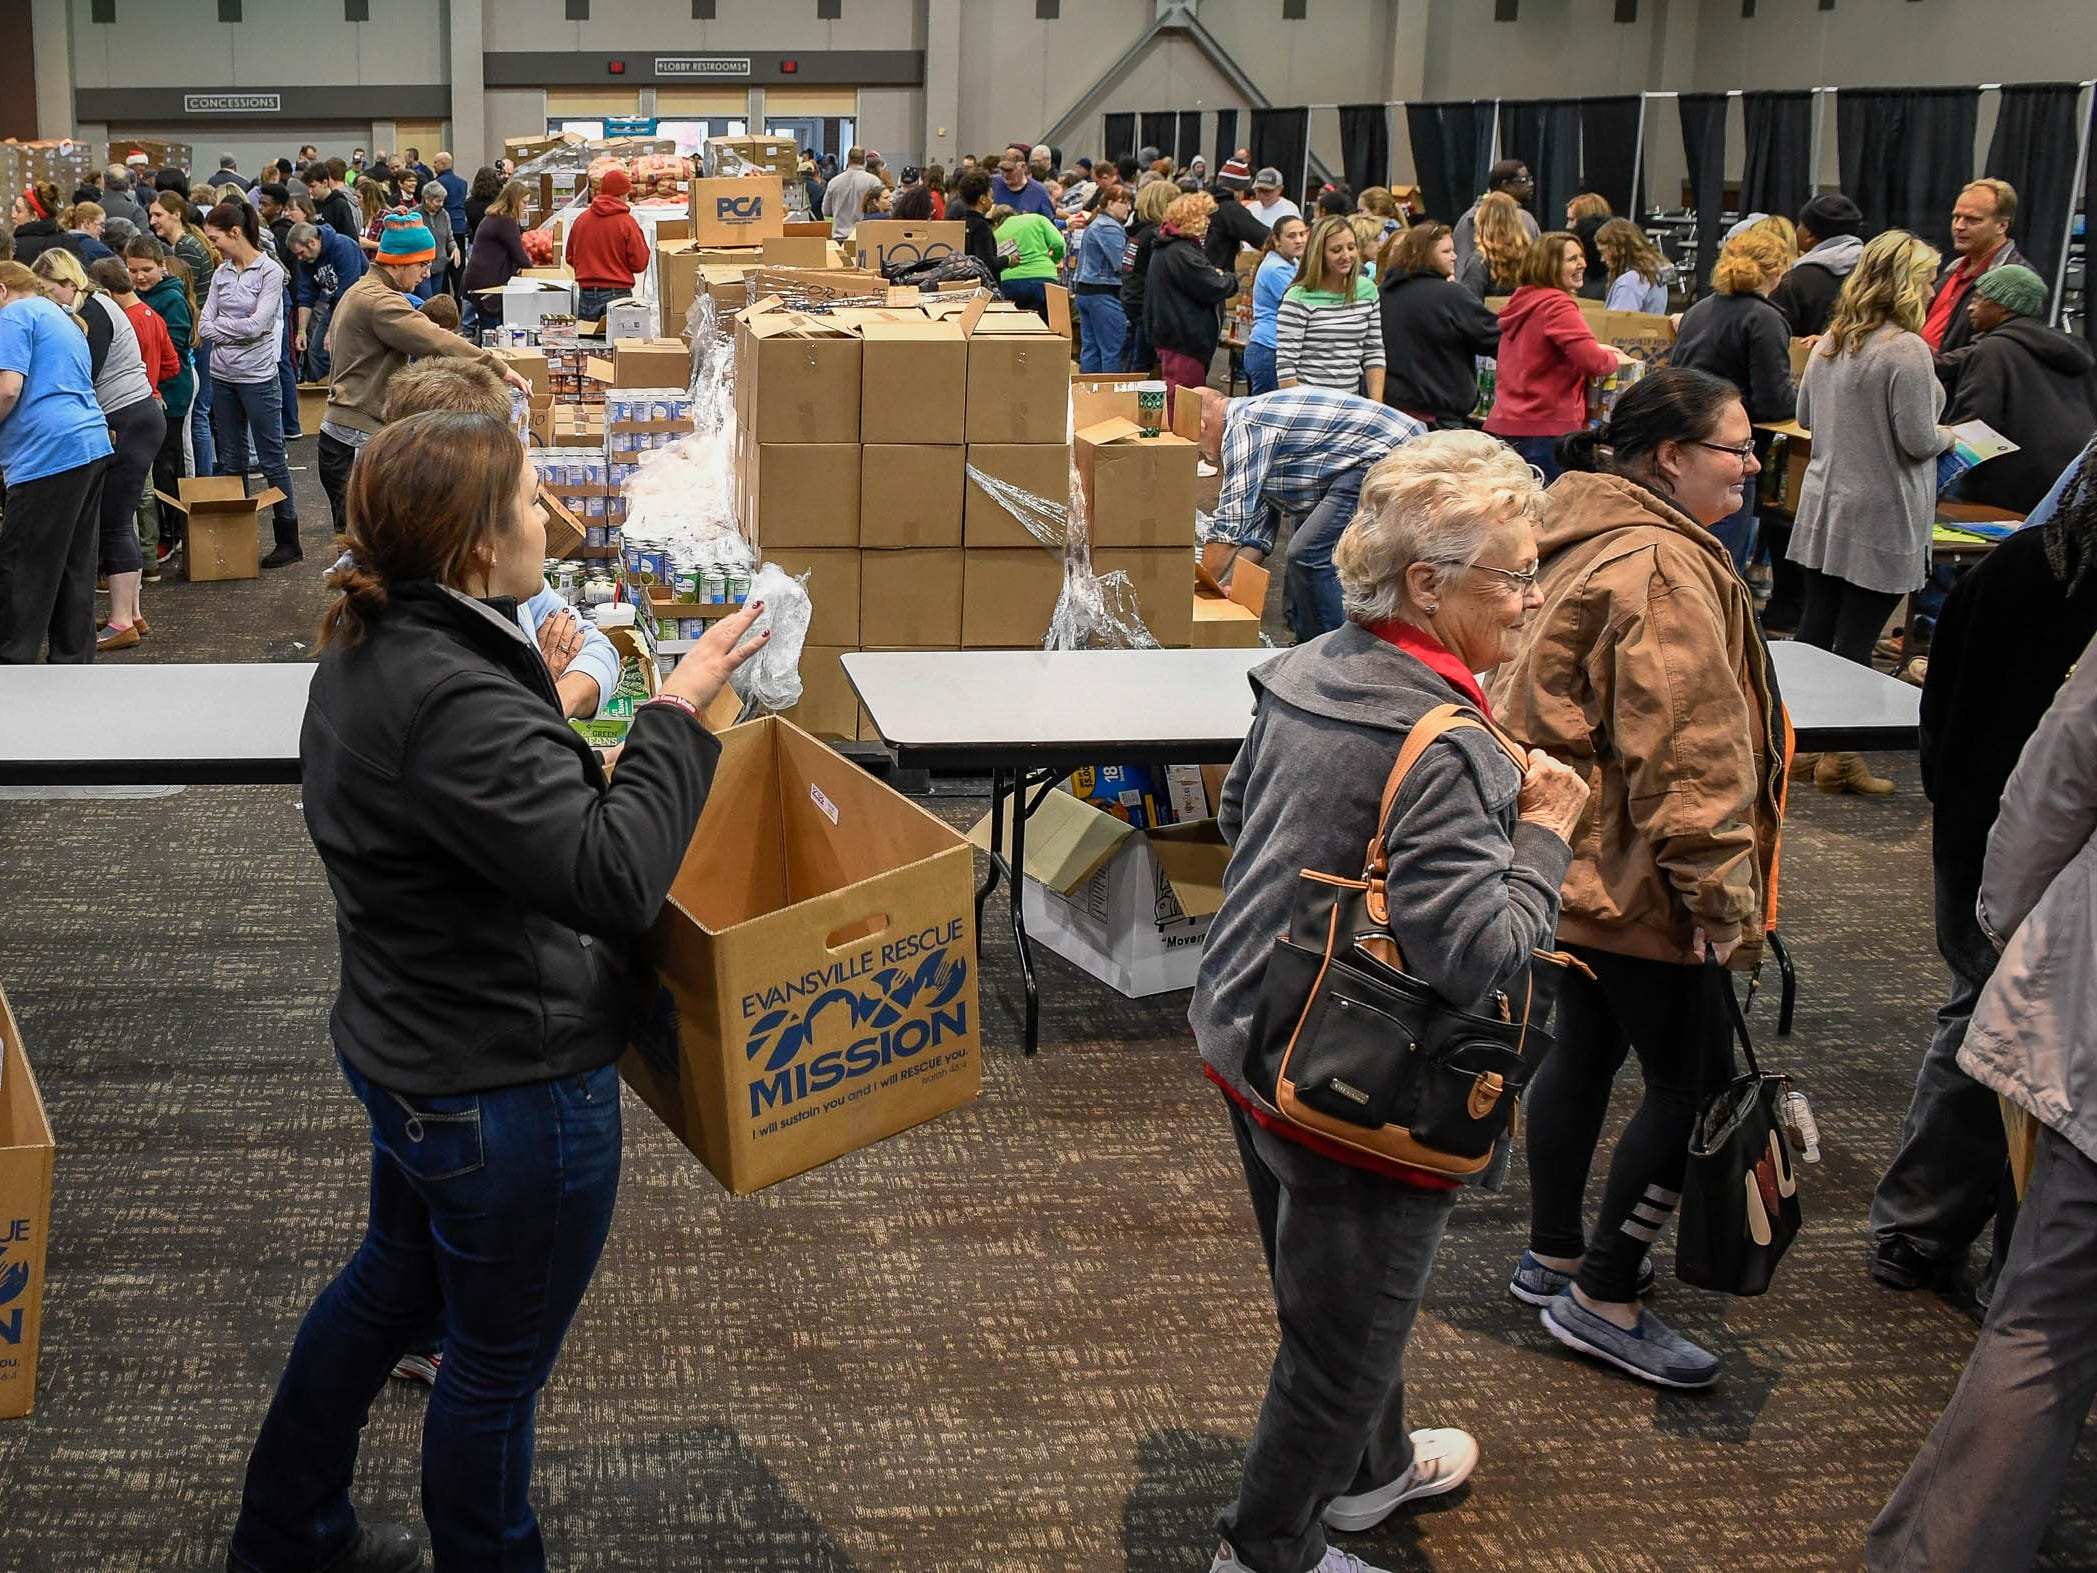 Volunteer helpers and families in need at the Evansville Rescue Mission's 96th annual Gobbler Gathering held at the Old National Events Plaza Tuesday, November 20, 2018.